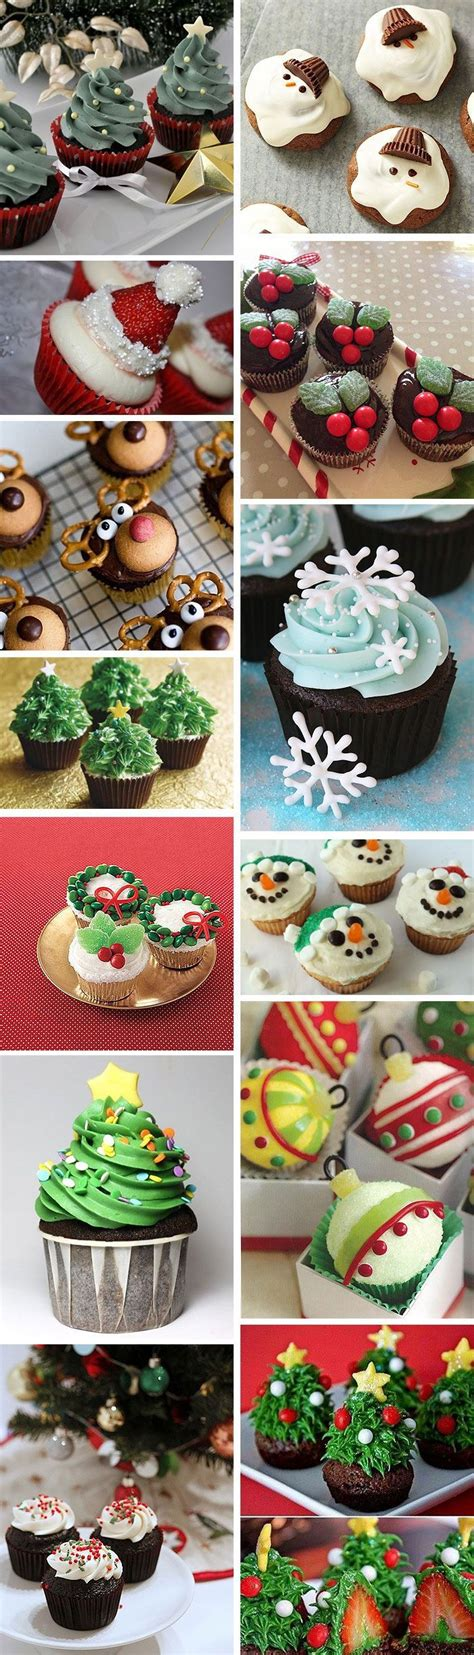 1000 ideas about cupcakes decorating on pinterest